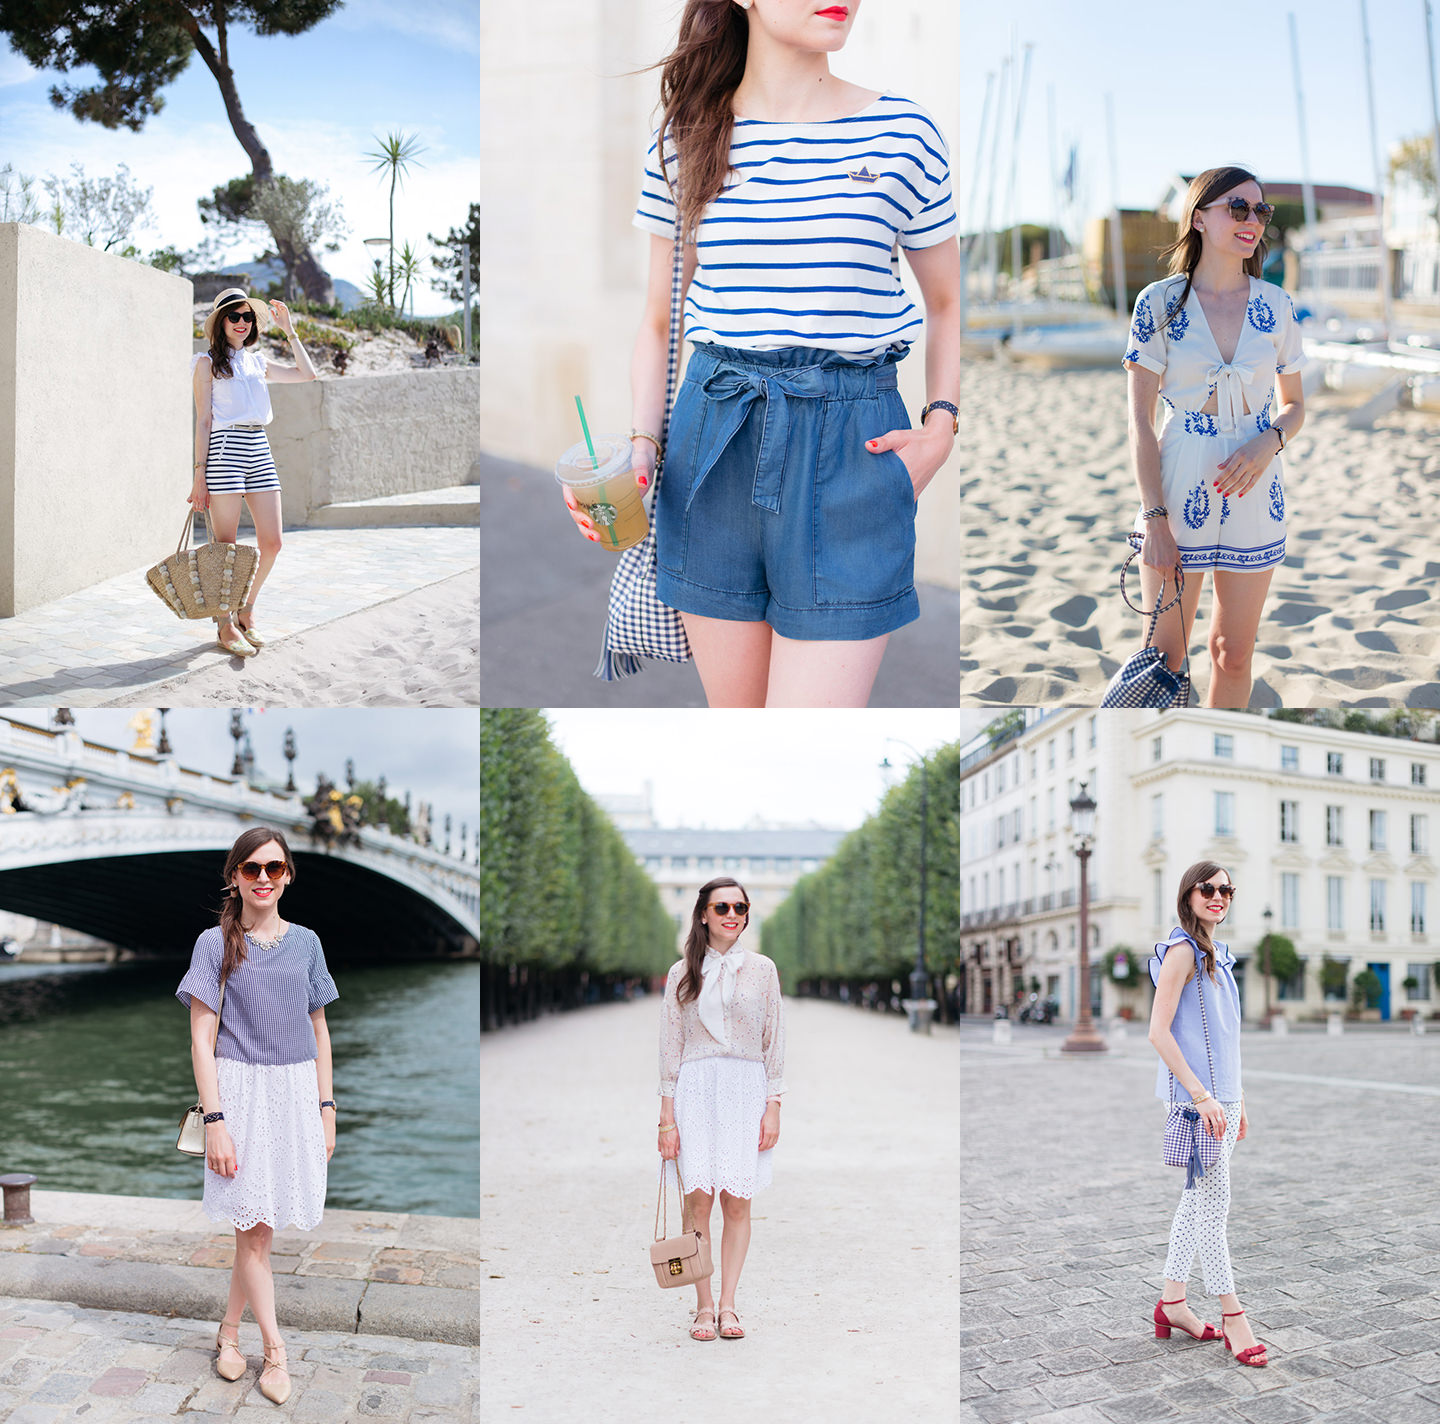 Blog-Mode-And-The-City-Looks-Best-Of-2016-Meilleurs-Looks-Aout-2016